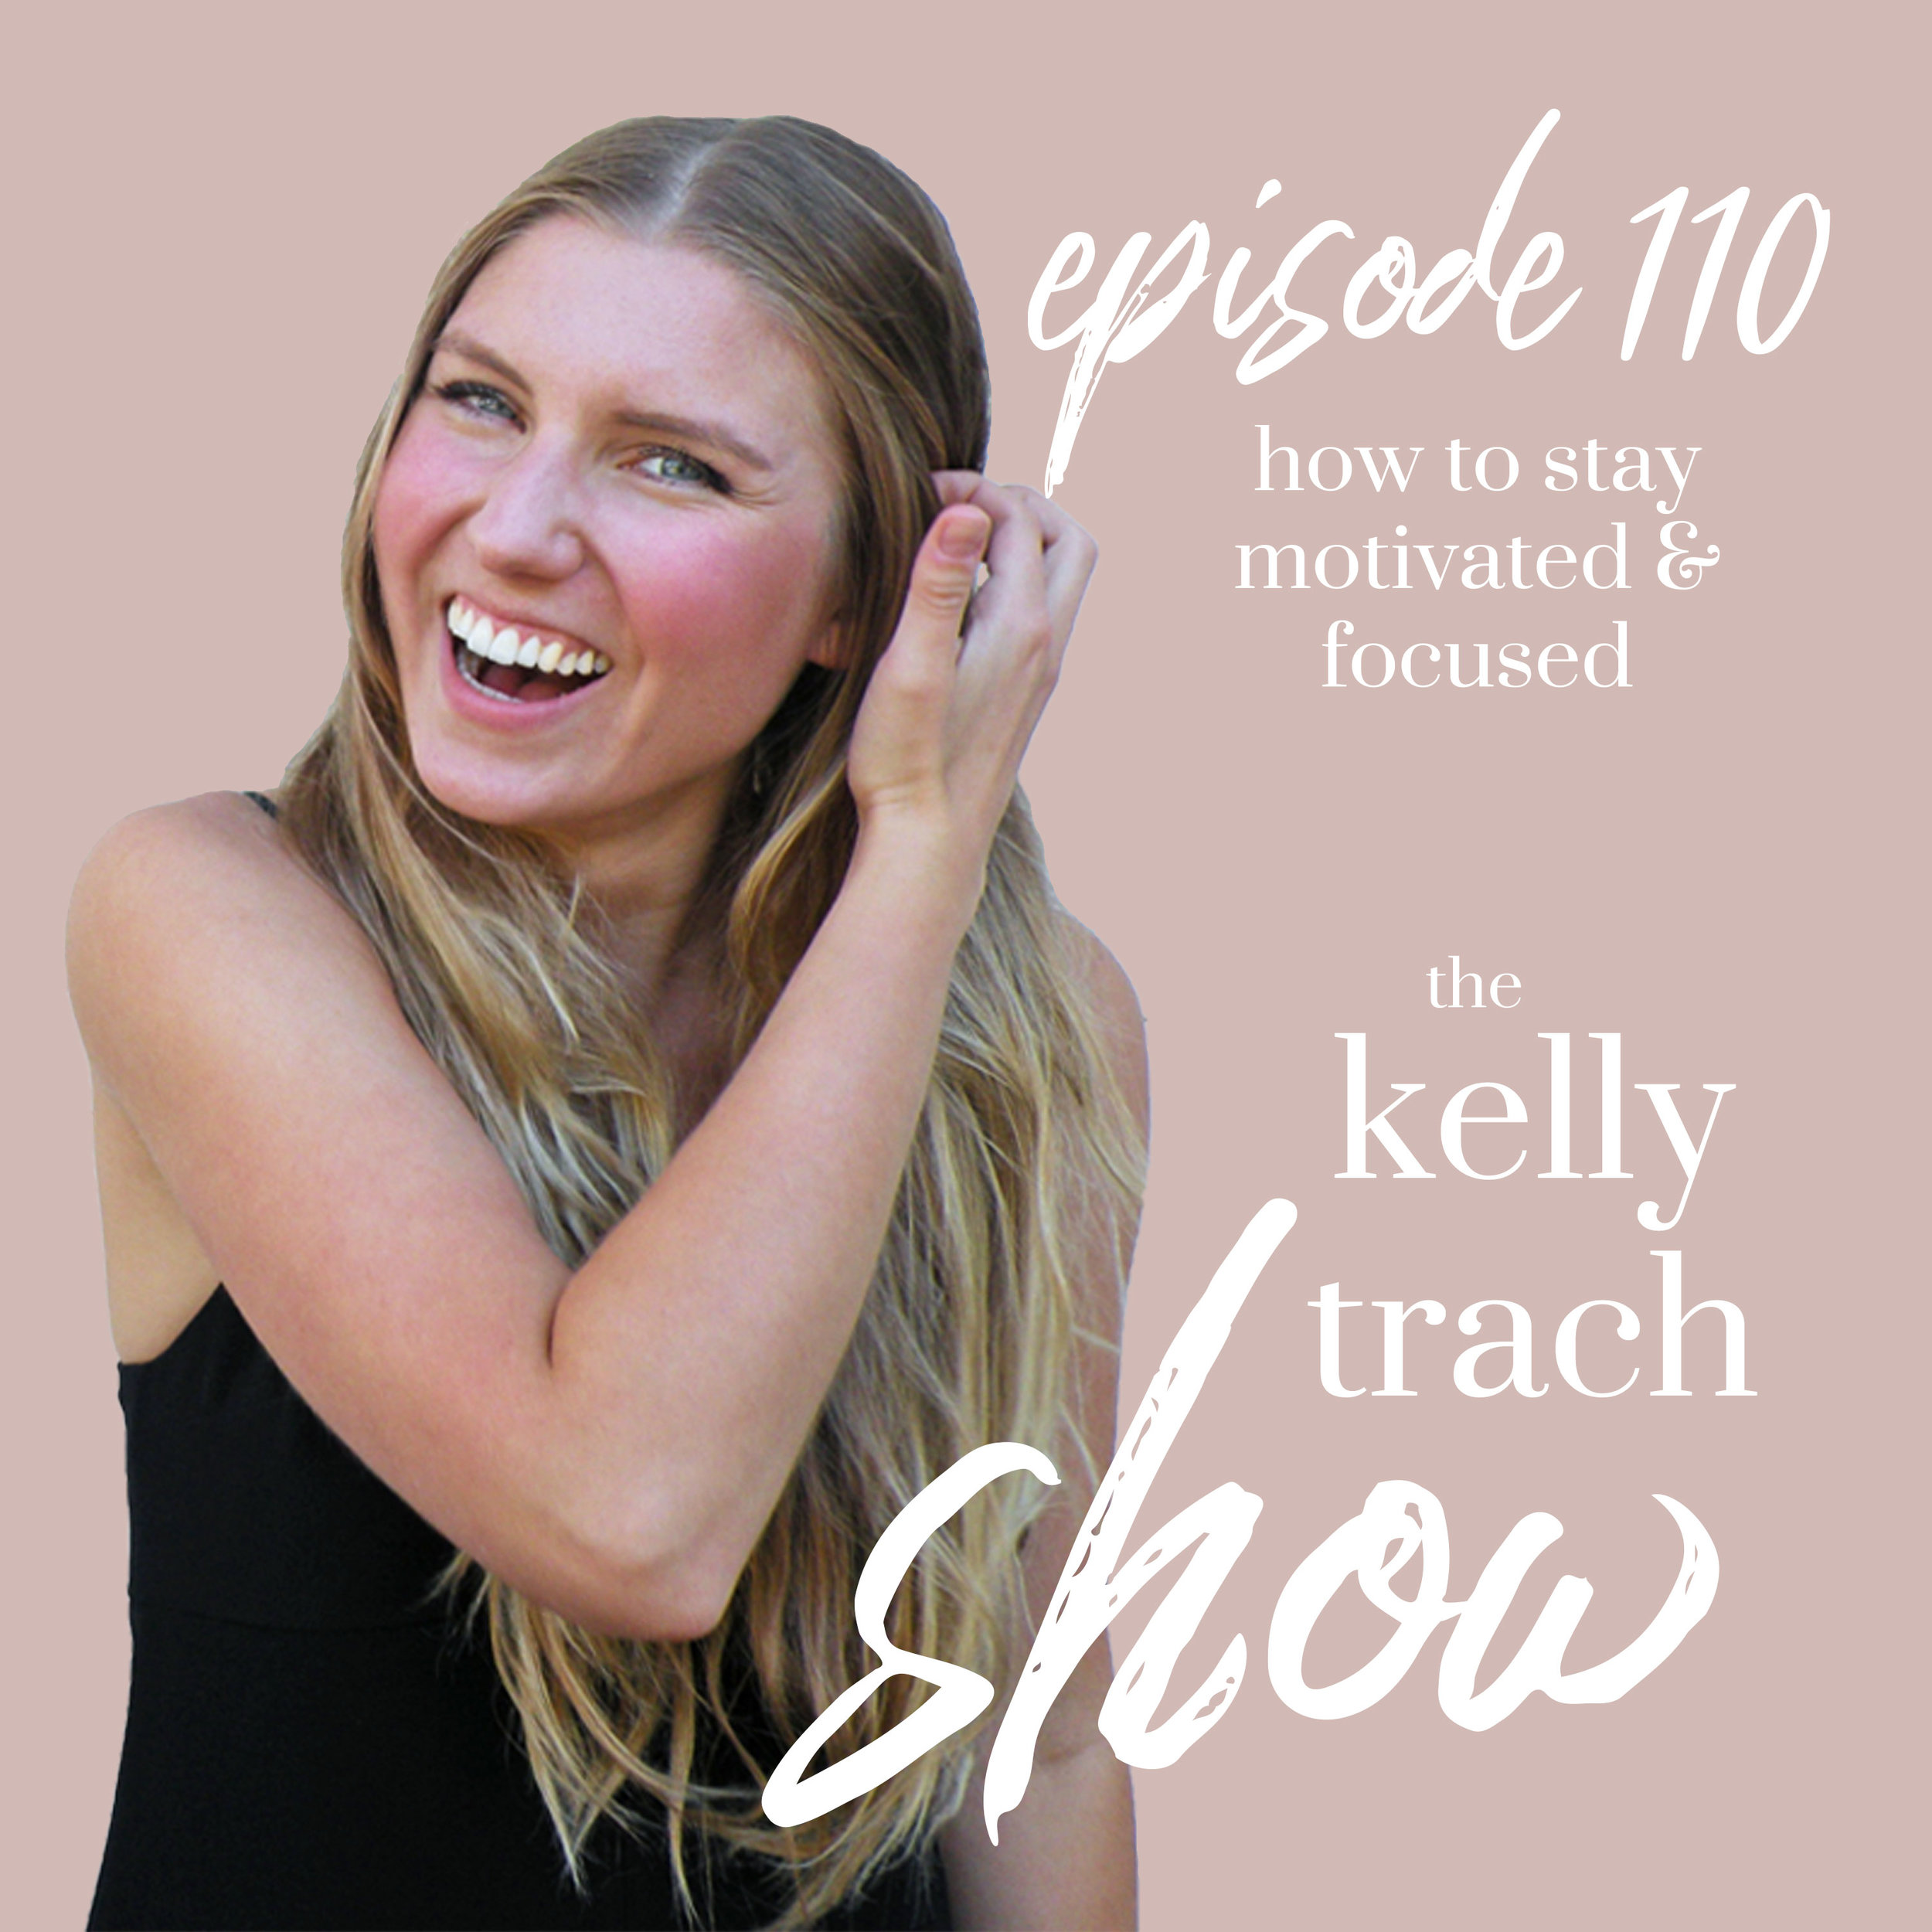 110 How to Stay Motivated & Focused When It Feels Hard The Kelly Trach Show Podcast.jpg